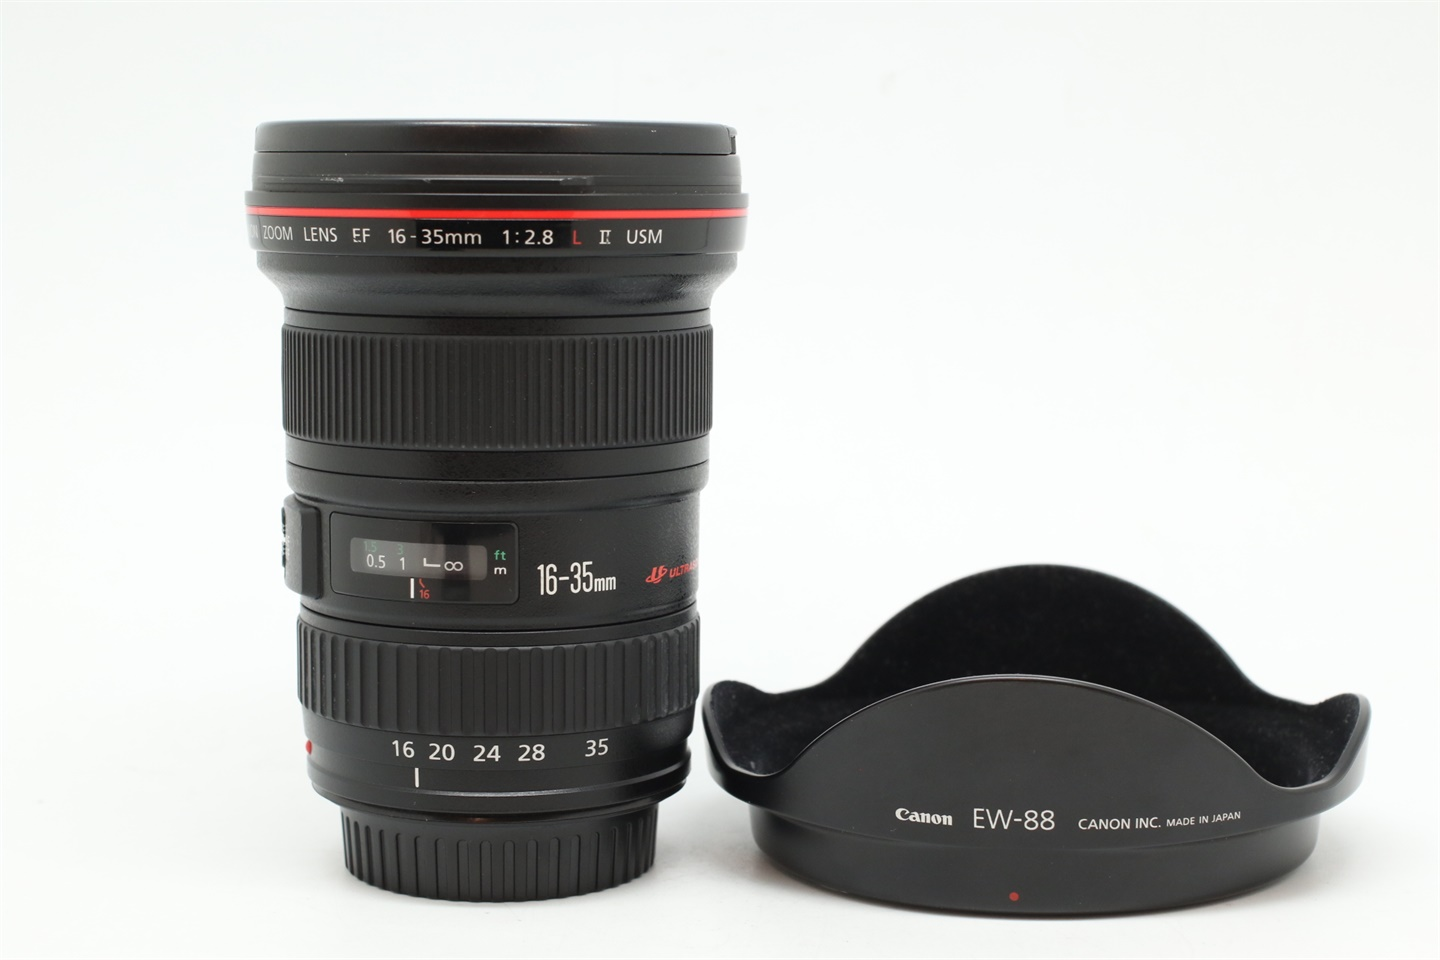 [USED-PUDU] CANON 16-35MM F2.8 L II EF USM 88%LIKE NEW CONDITION  SN:3626187